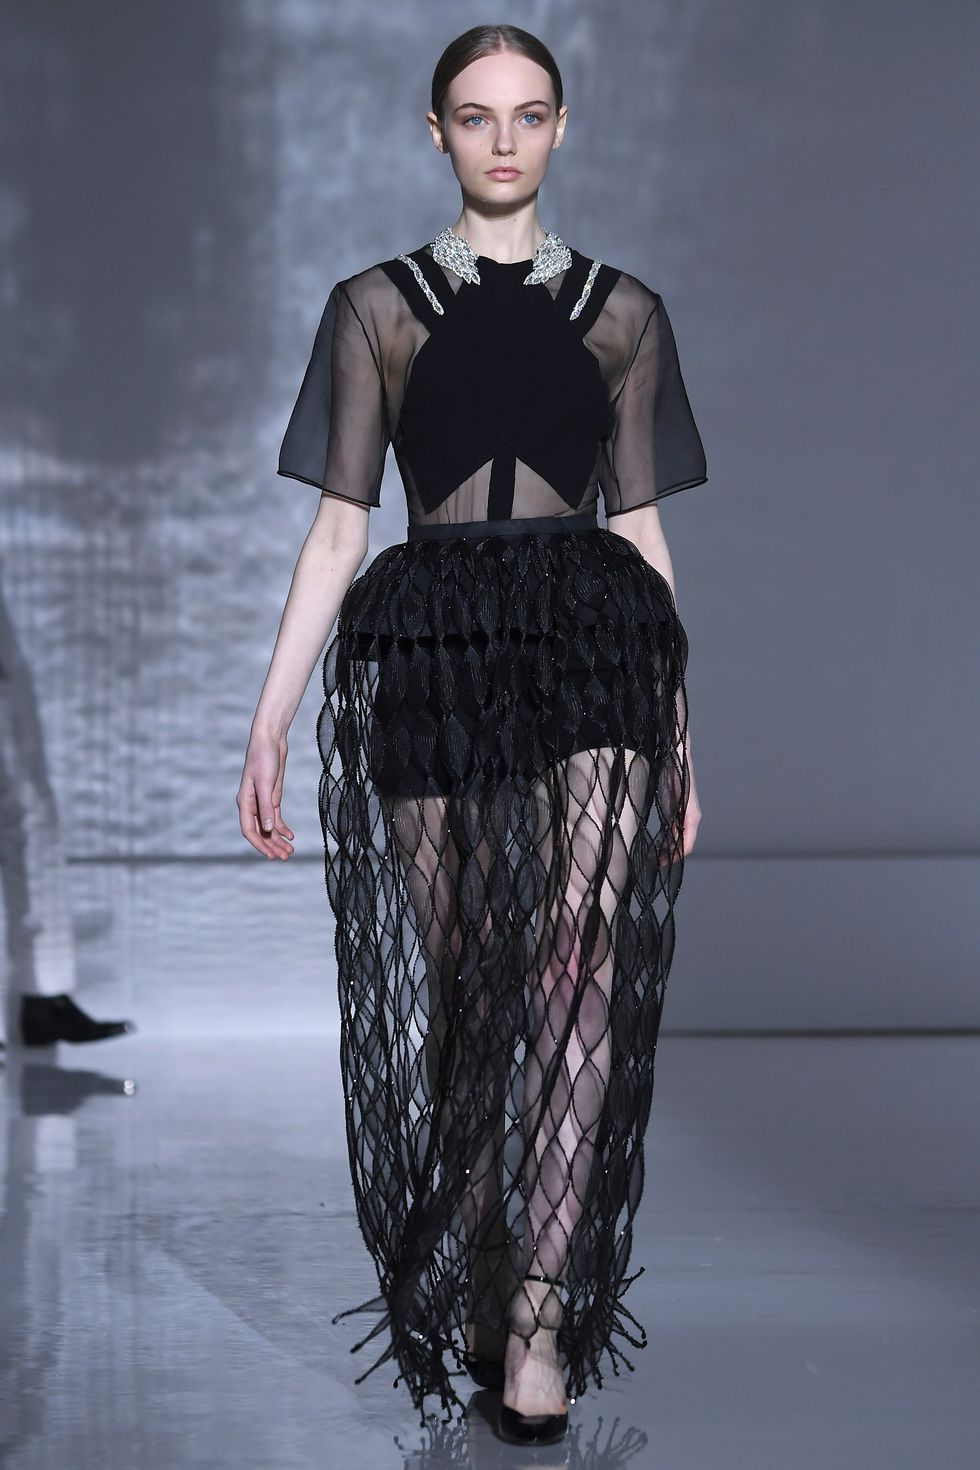 hbz-ss2019-couture-givenchy-02-1548210204.jpg